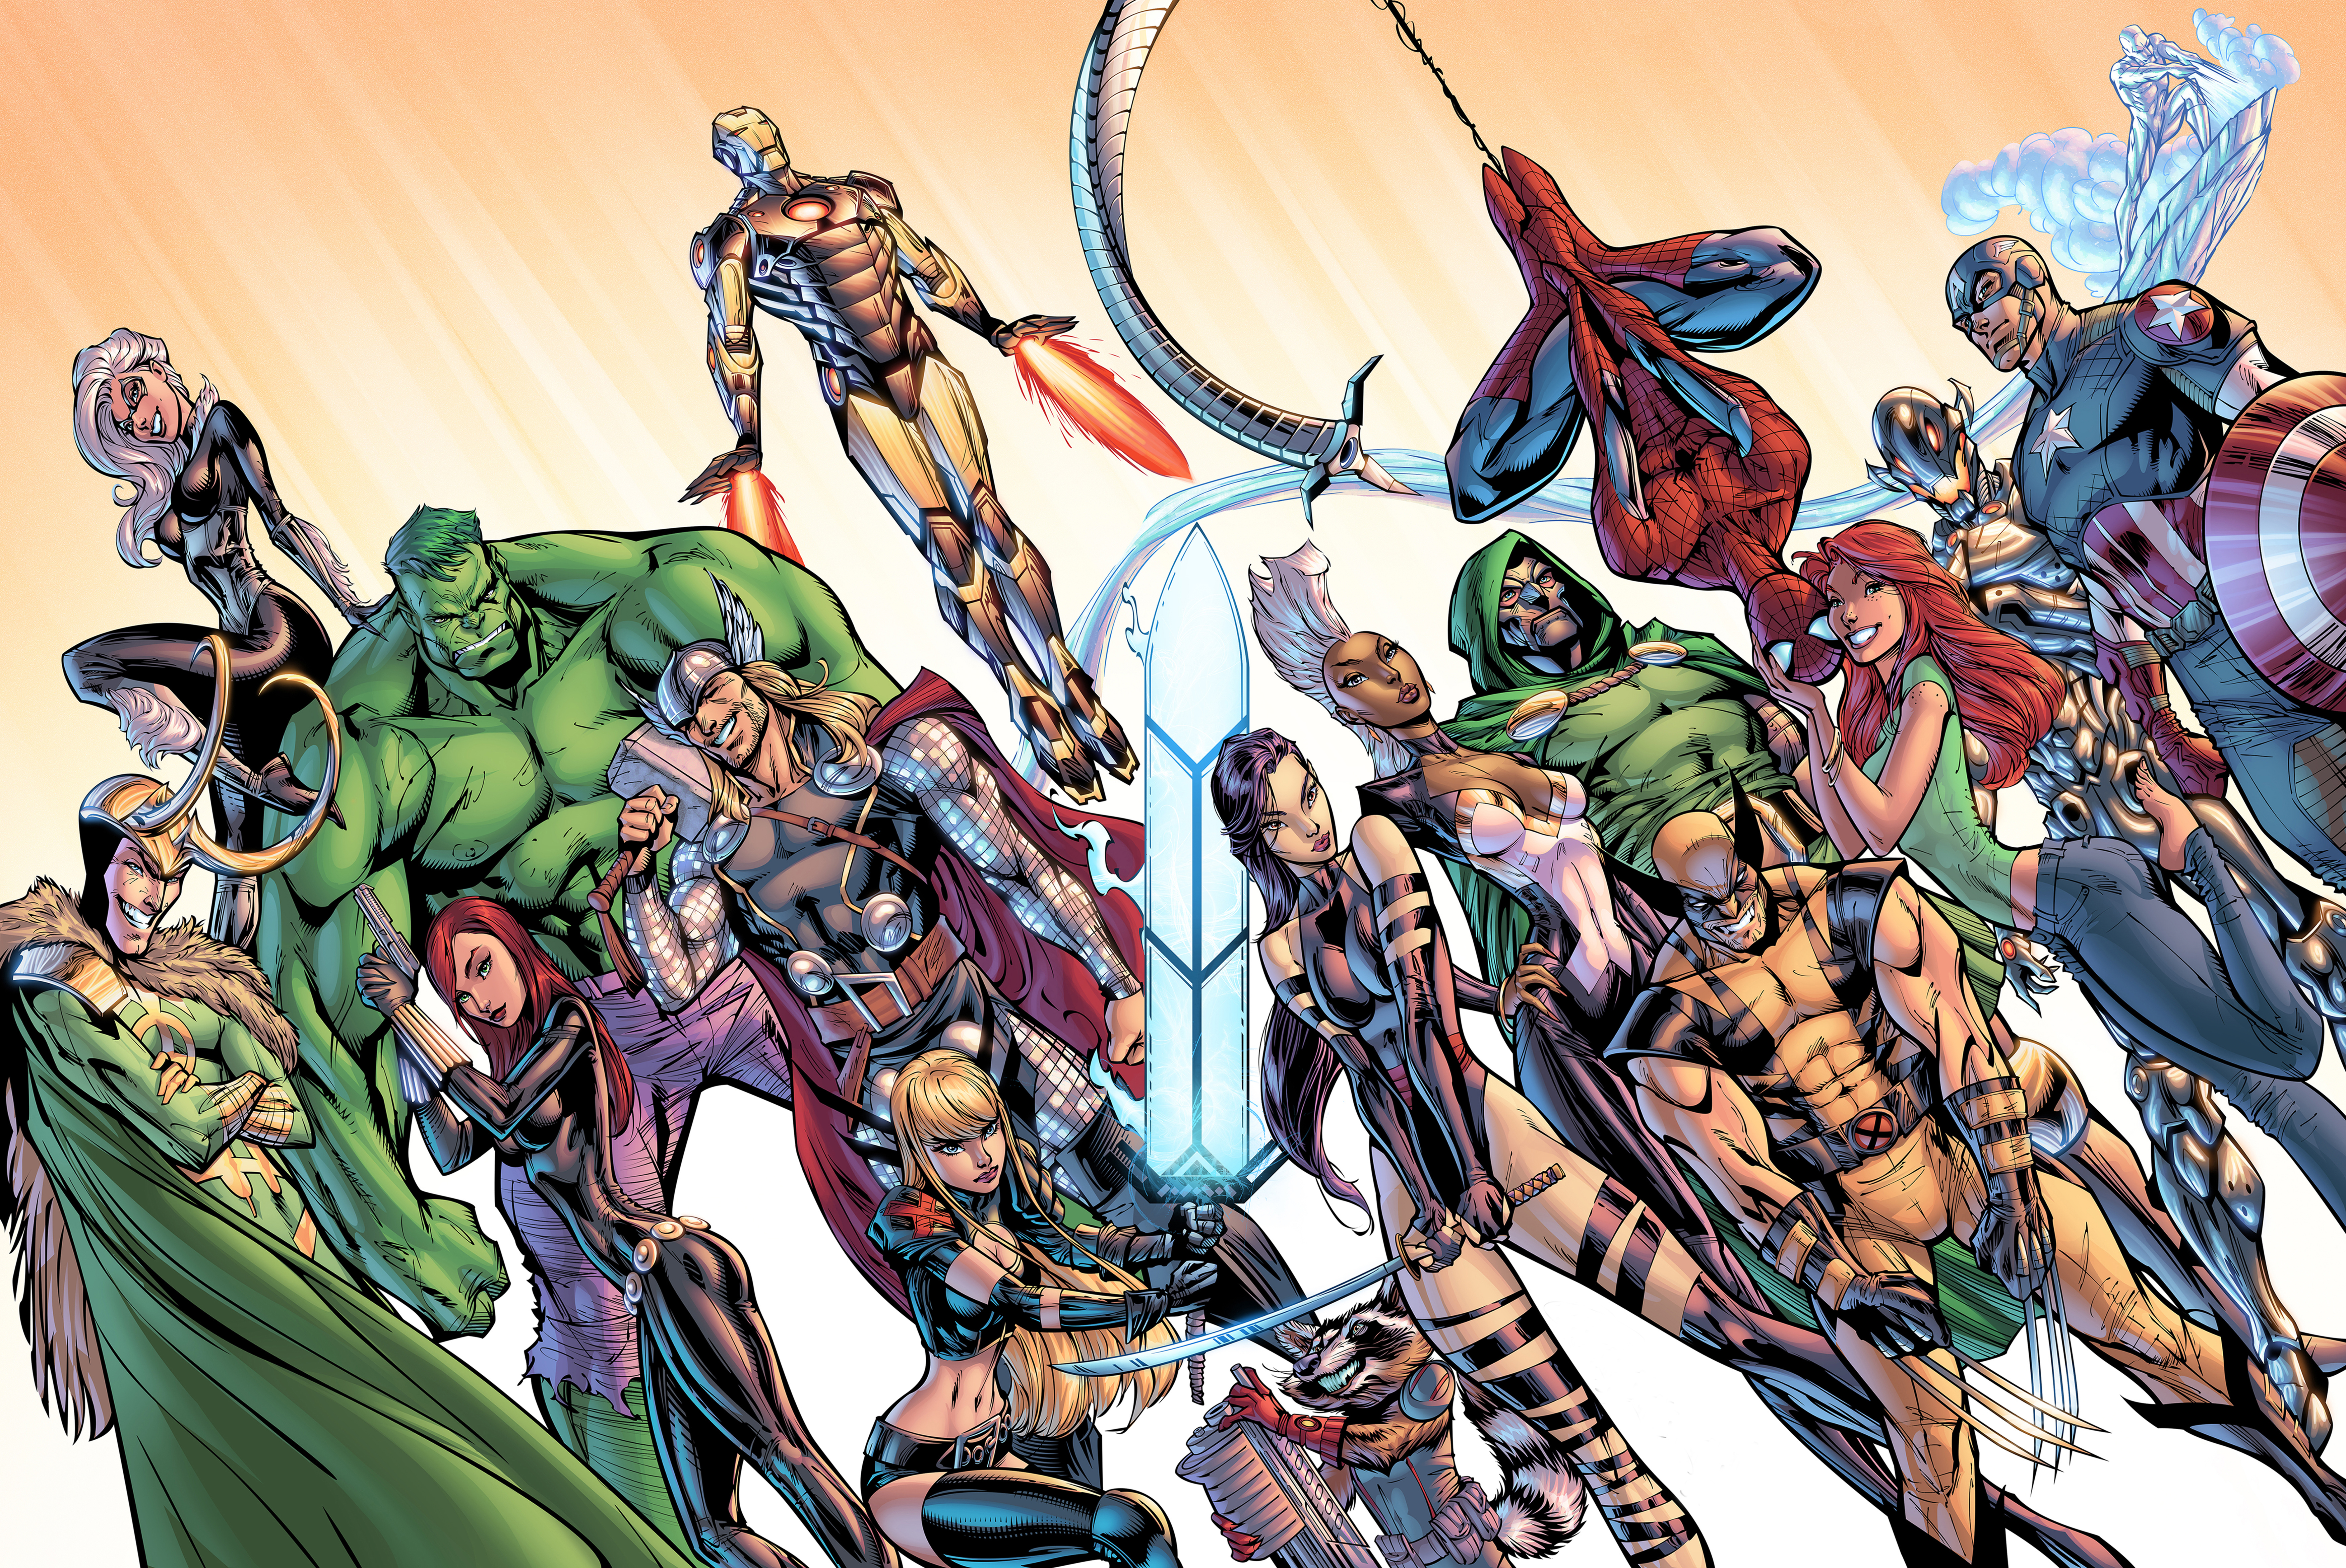 Sony Pictures Is Interested In Buying Fox Which Means We Could See The X-Men Crossover With Spider-Man Characters 1